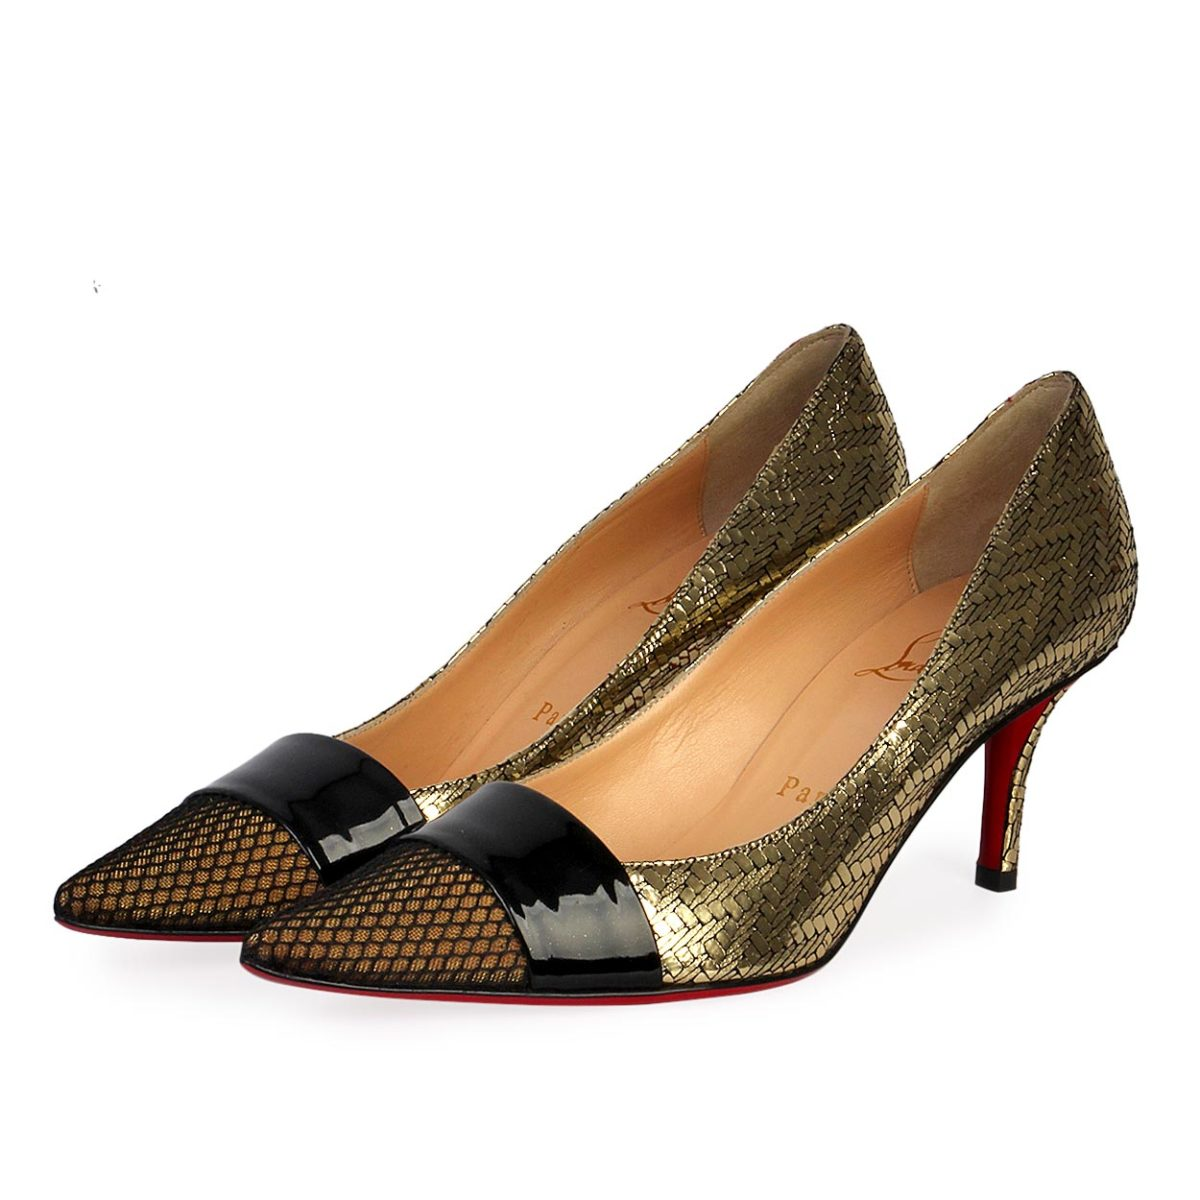 sale retailer 80d80 a7096 CHRISTIAN LOUBOUTIN Mesh Pointy Toe Pumps Gold/Black - S: 37.5 (4.5)